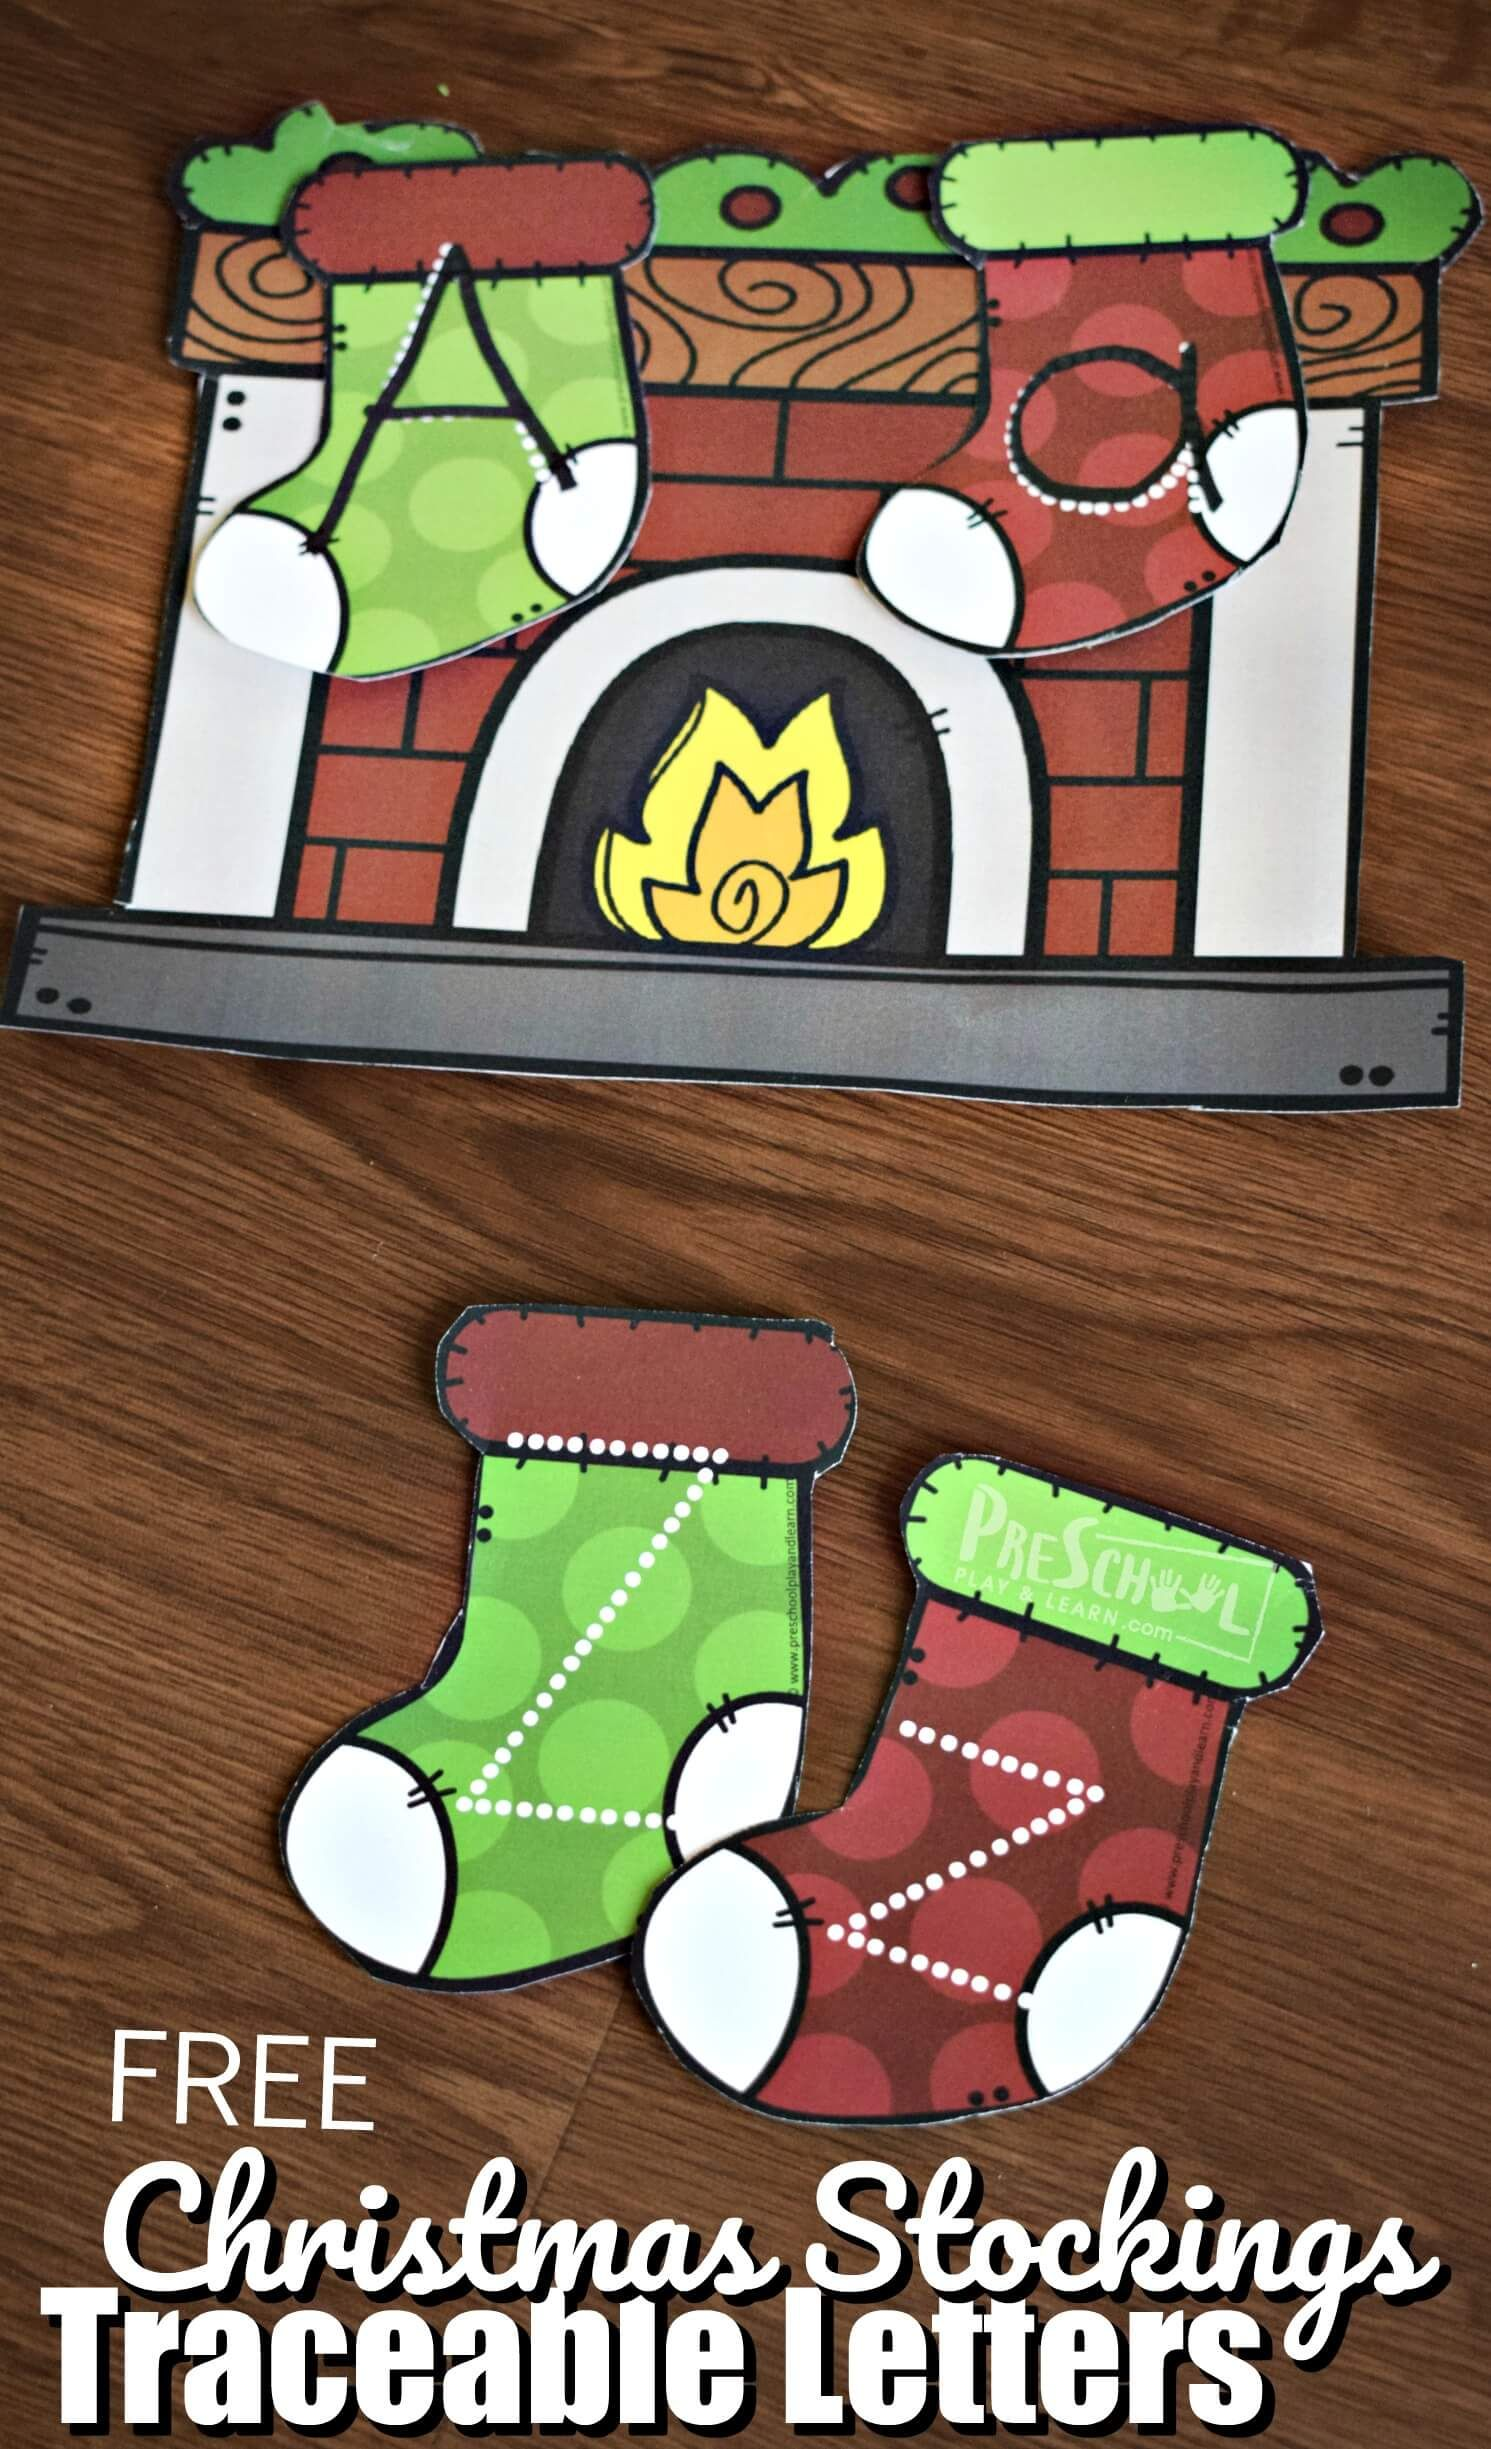 Free Christmas Stocking Traceable Letters